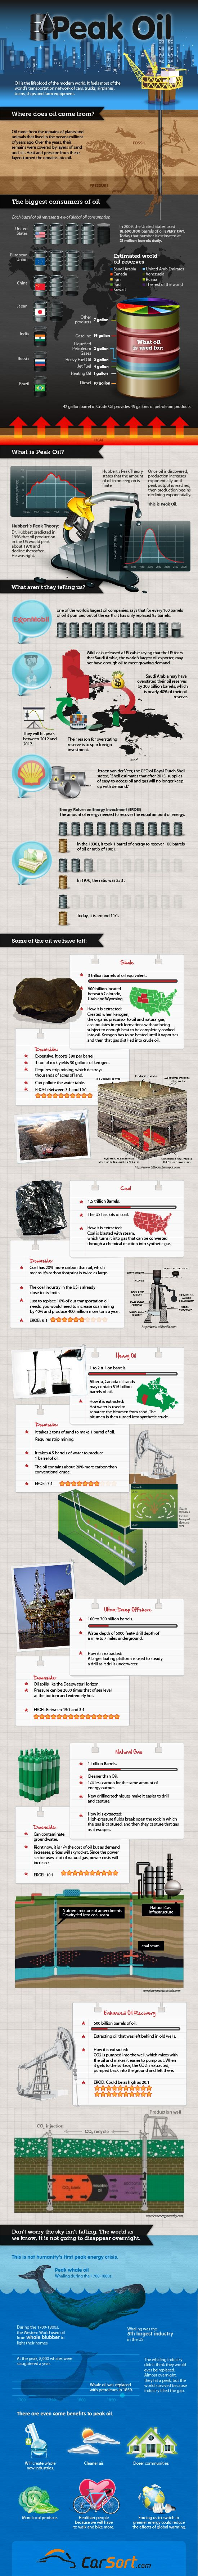 Infographic on Peak Oil - Who Uses How Much, and Where We Go From Here